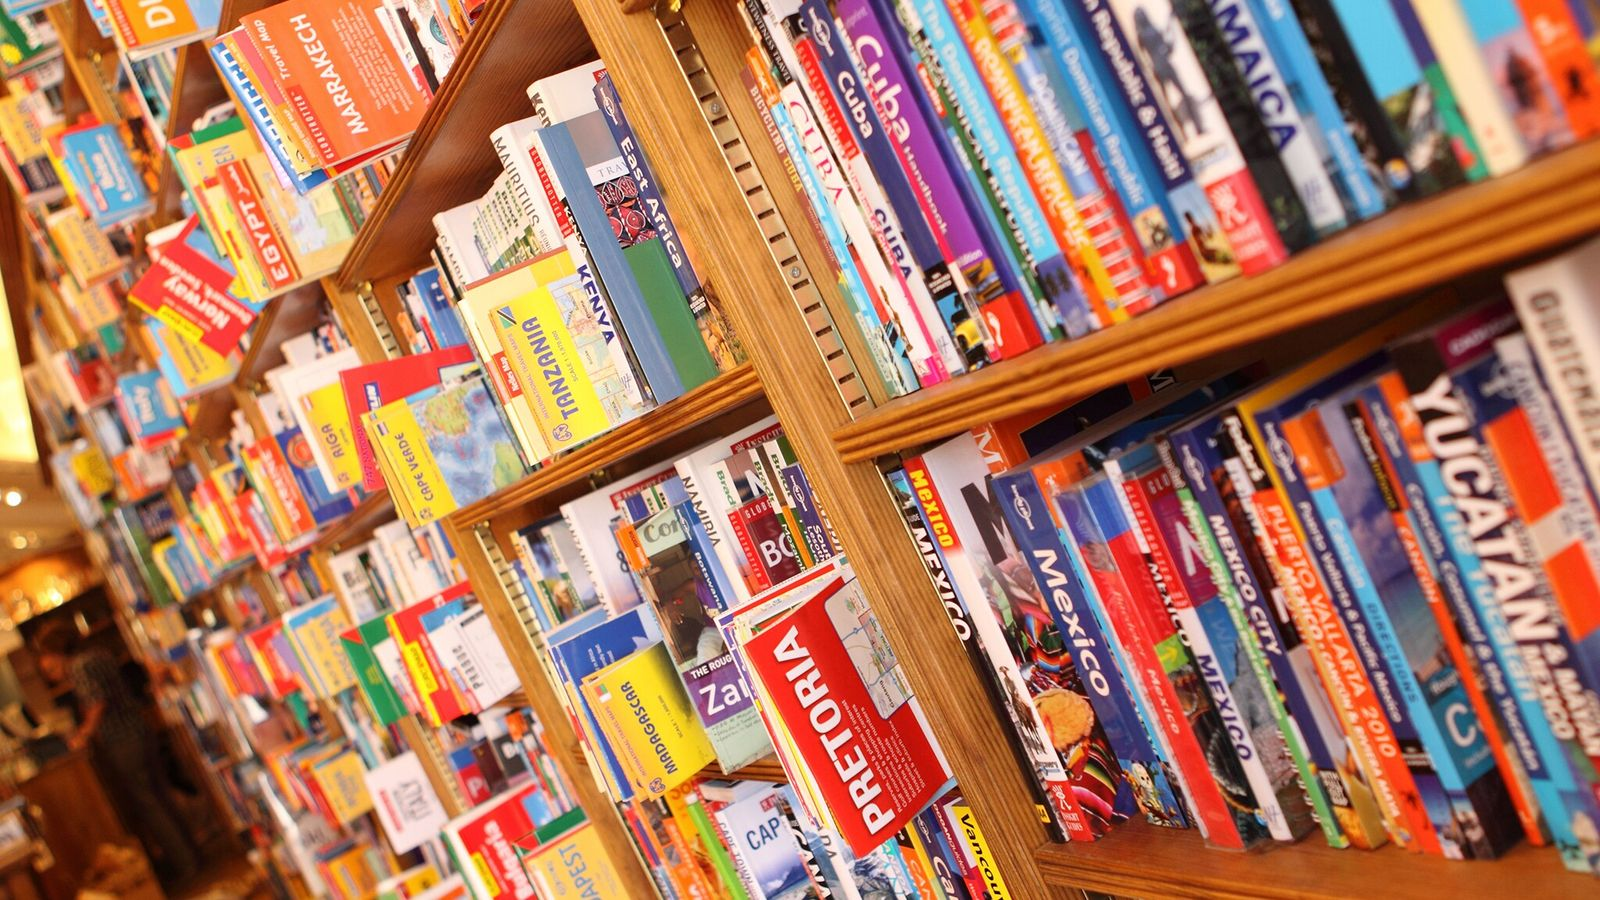 The need for travel books to provide solid, practical information about far-off destinations has probably passed ...